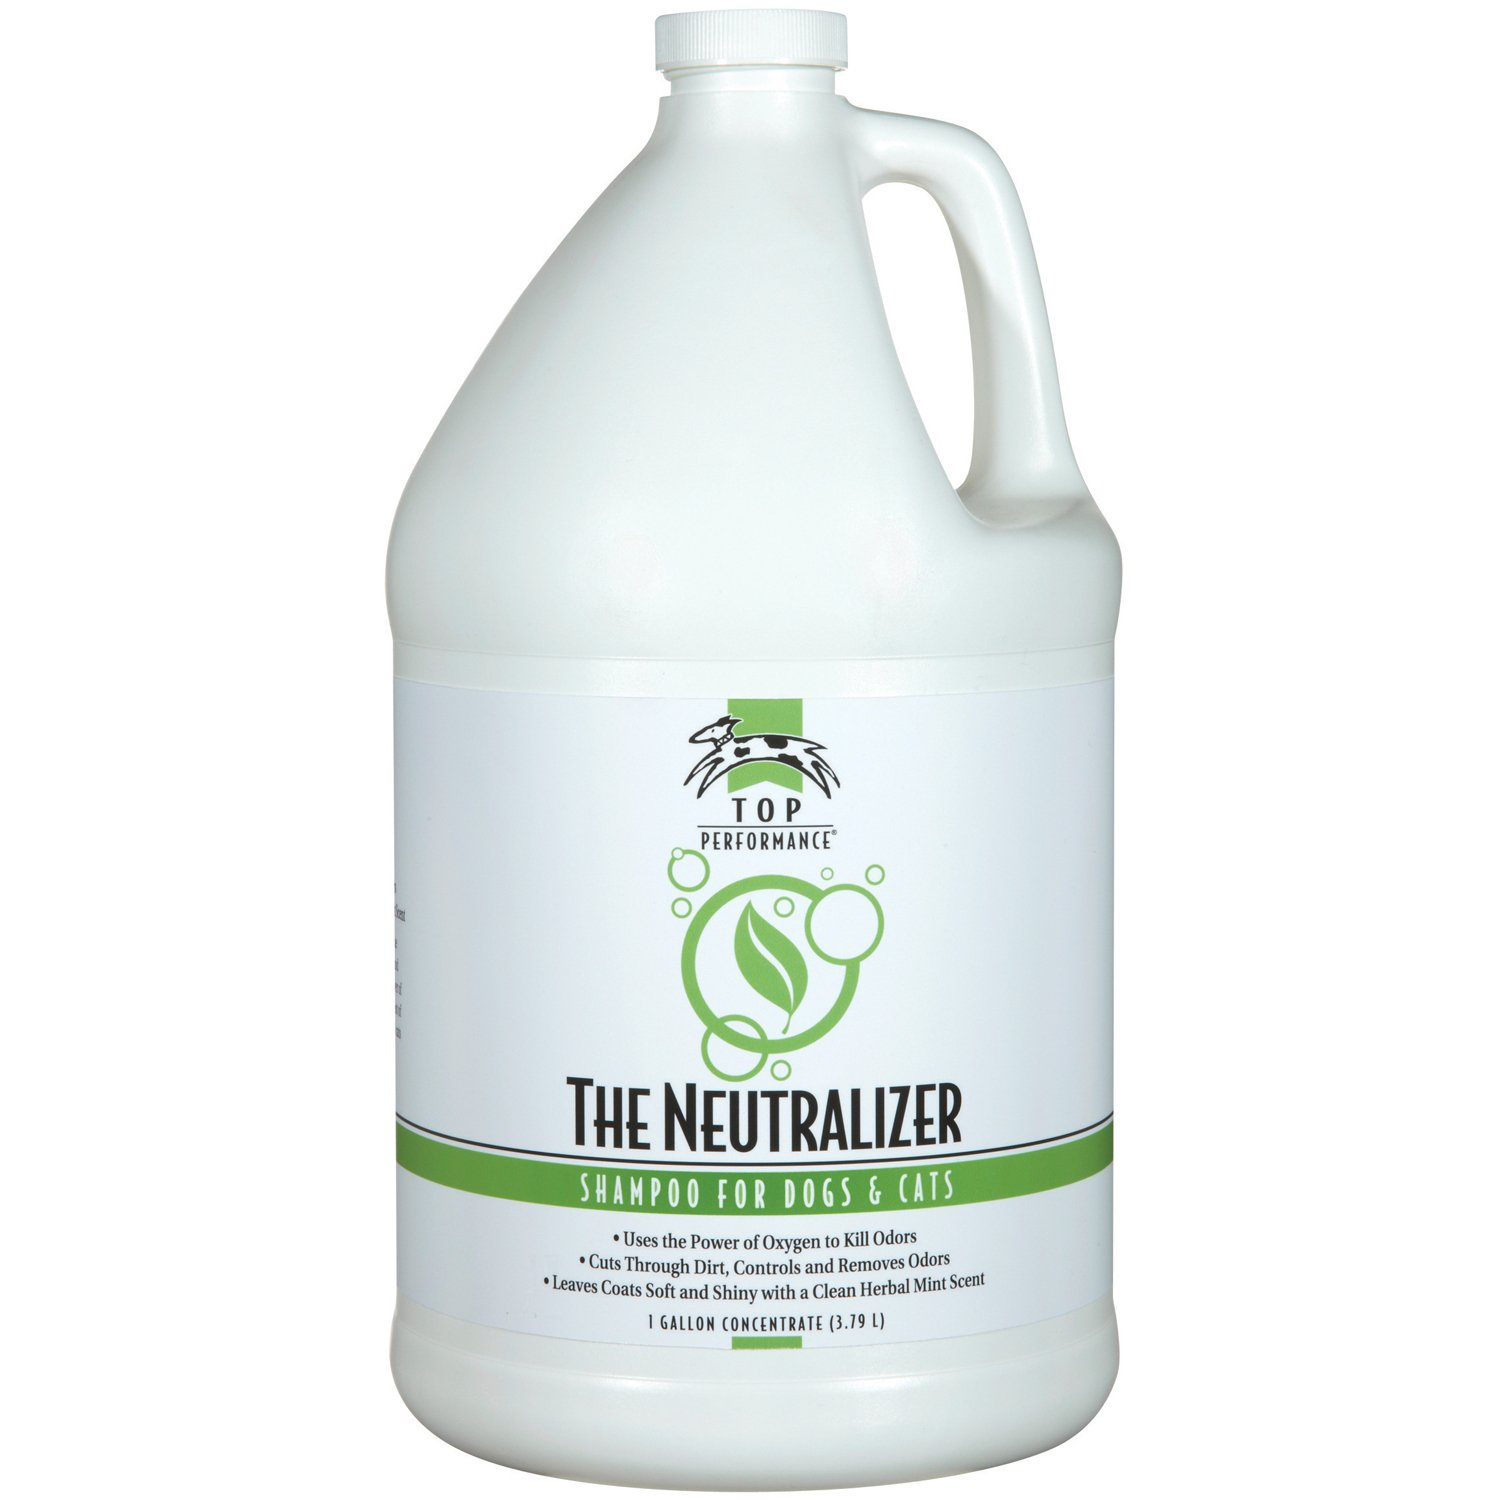 Top Performance The Neutralizer Dog and Cat Shampoo, 1-Gallon by Top Performance